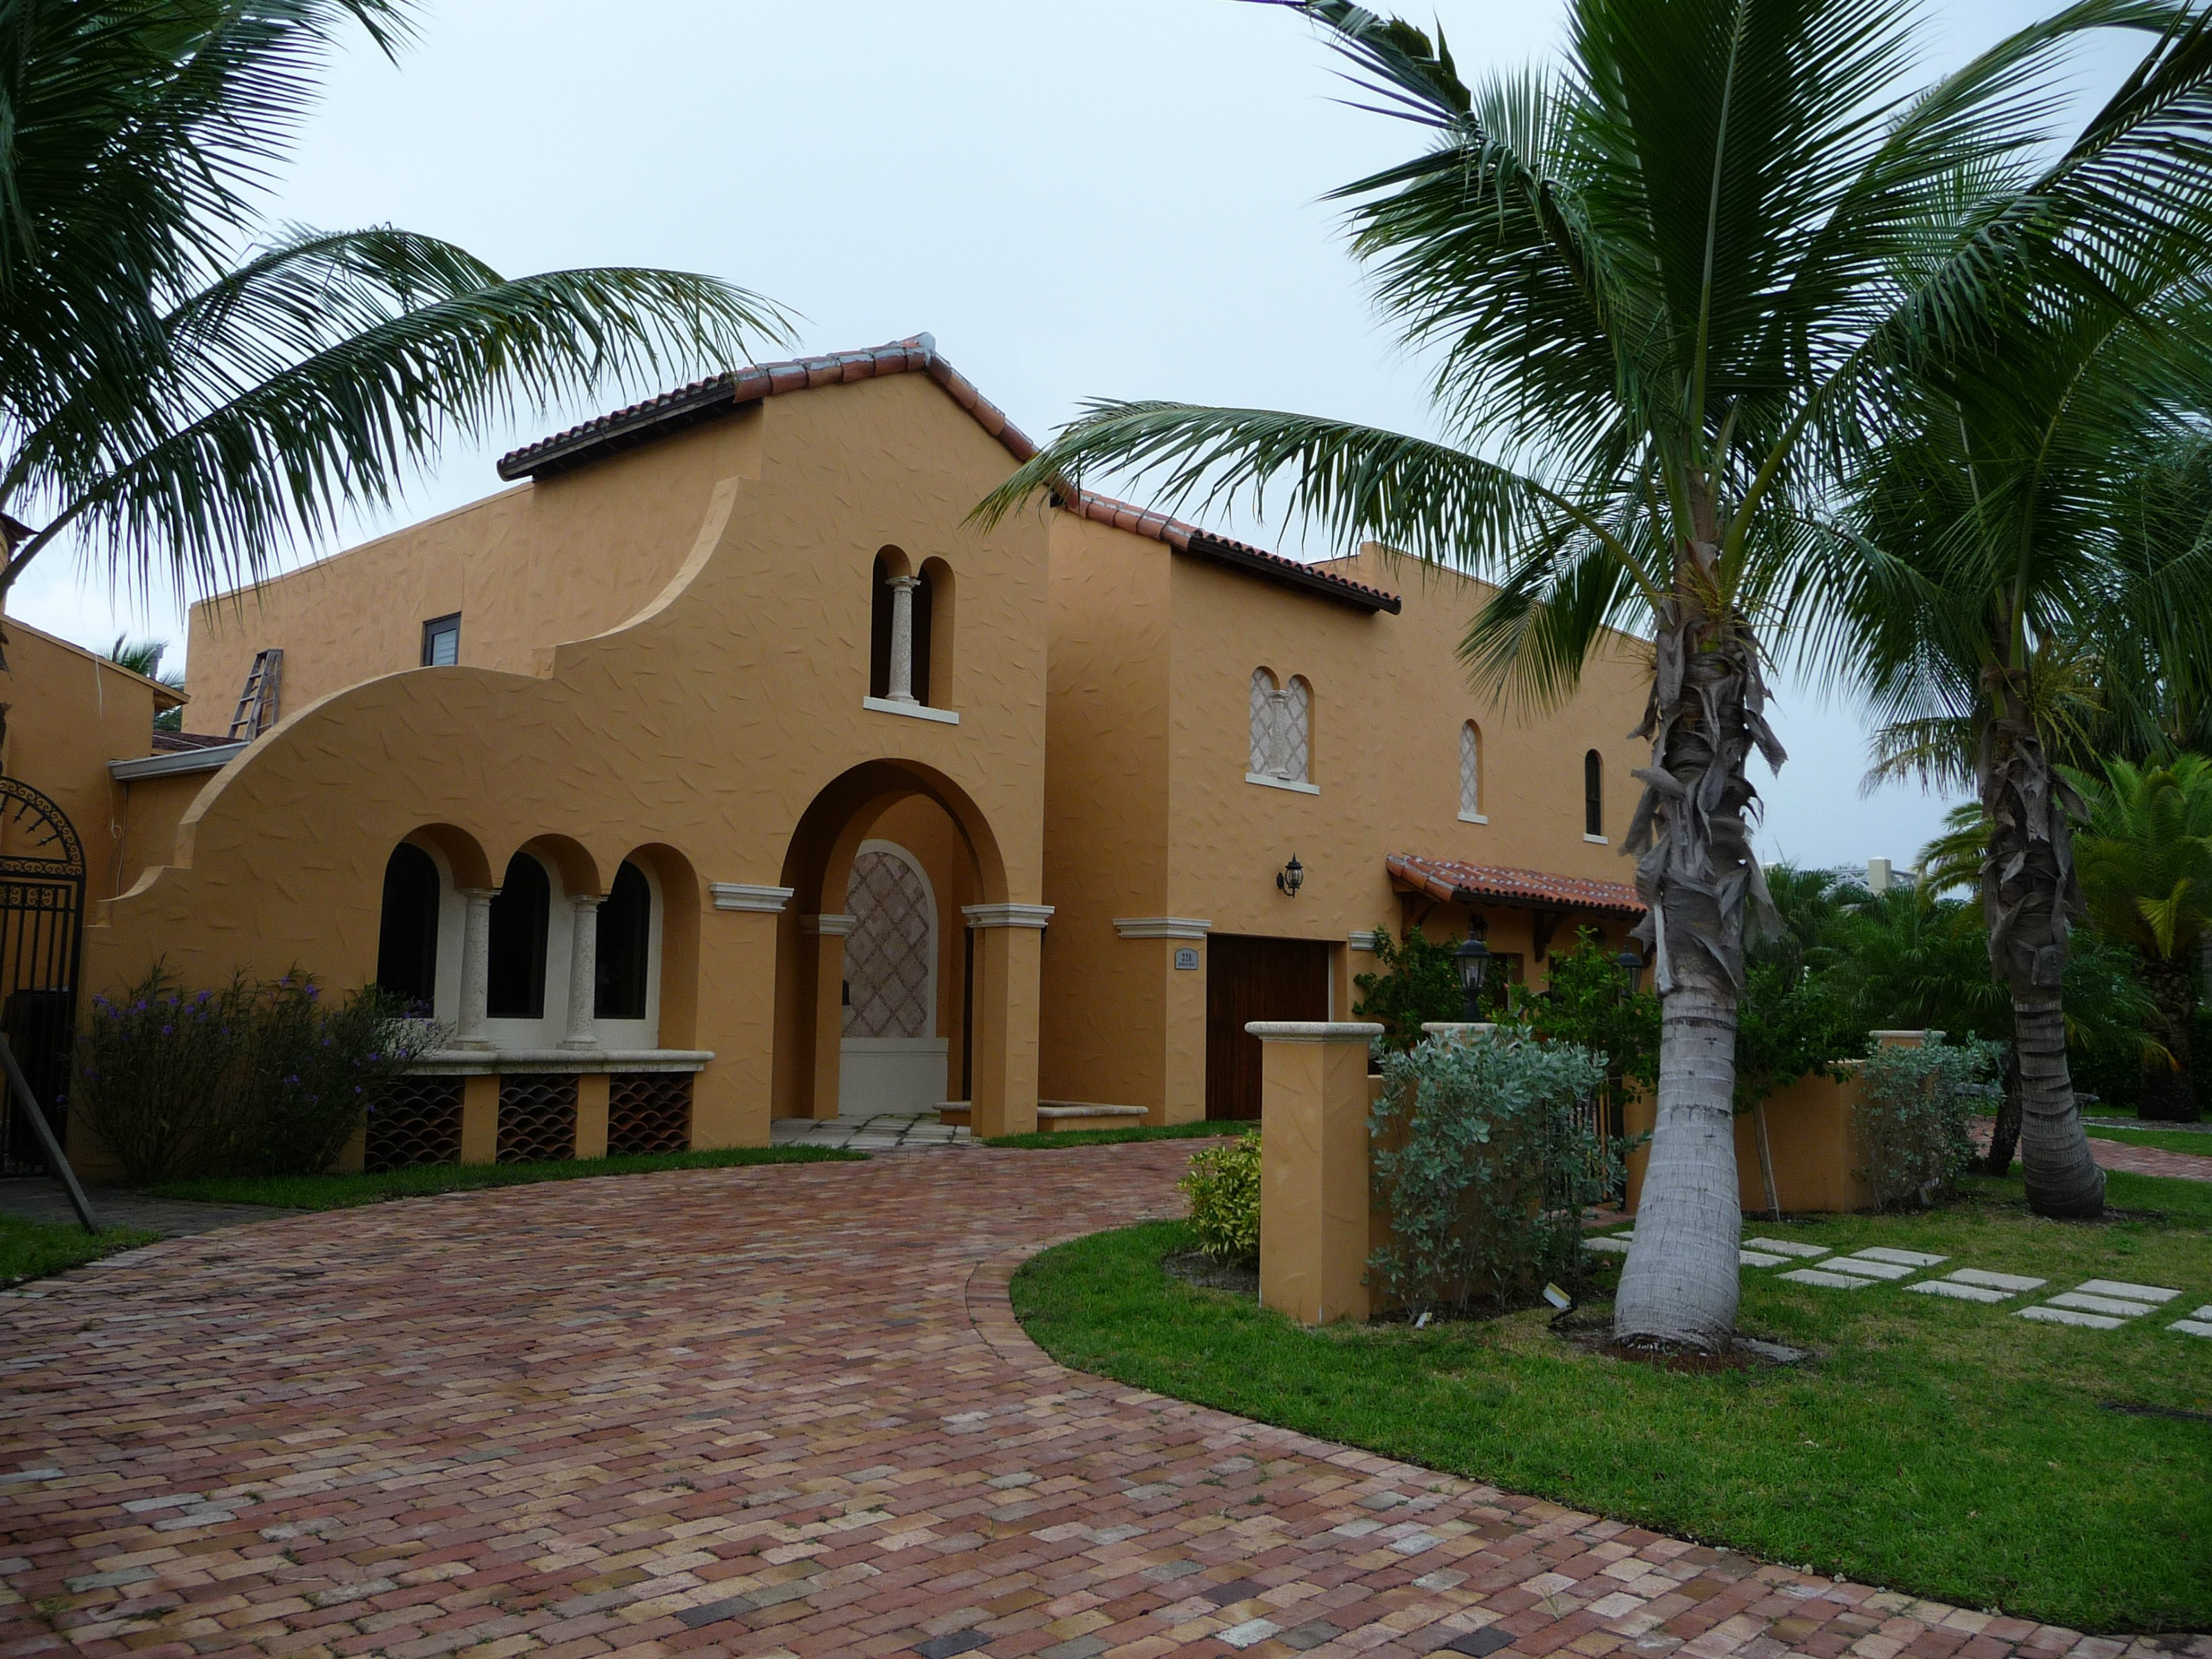 Casa Unifamiliar por un Venta en Beautiful Spanish Style Home 320 Murray Rd West Palm Beach, Florida 33405 Estados Unidos